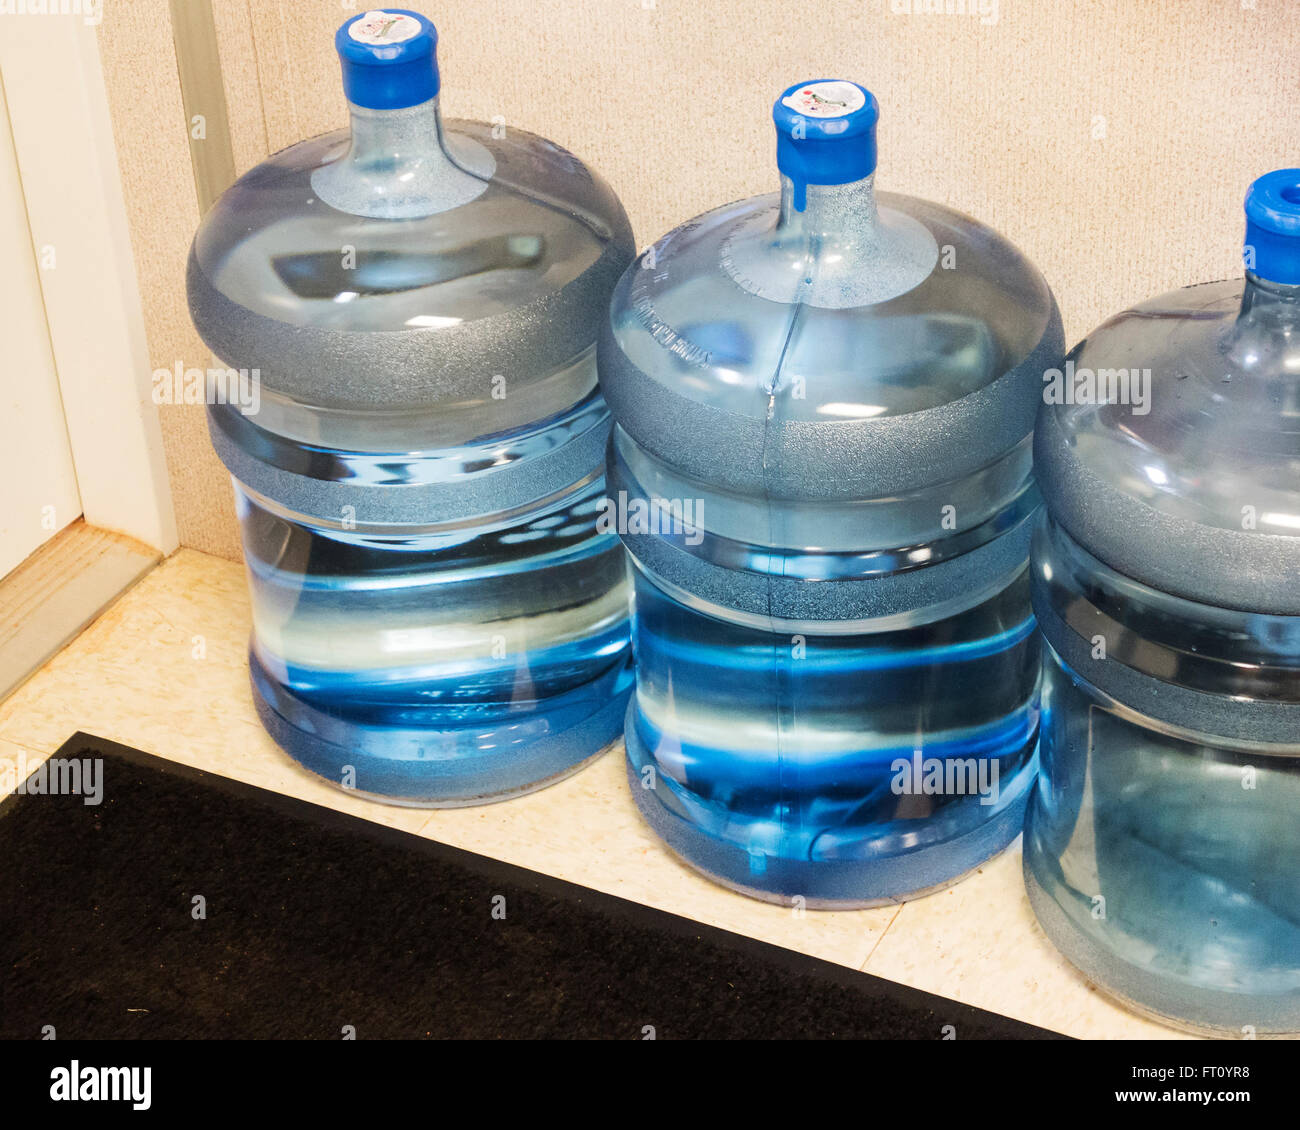 5 gallon stock photos 5 gallon stock images alamy three 5 gallon water bottles on the floor of a storage area in an office biocorpaavc